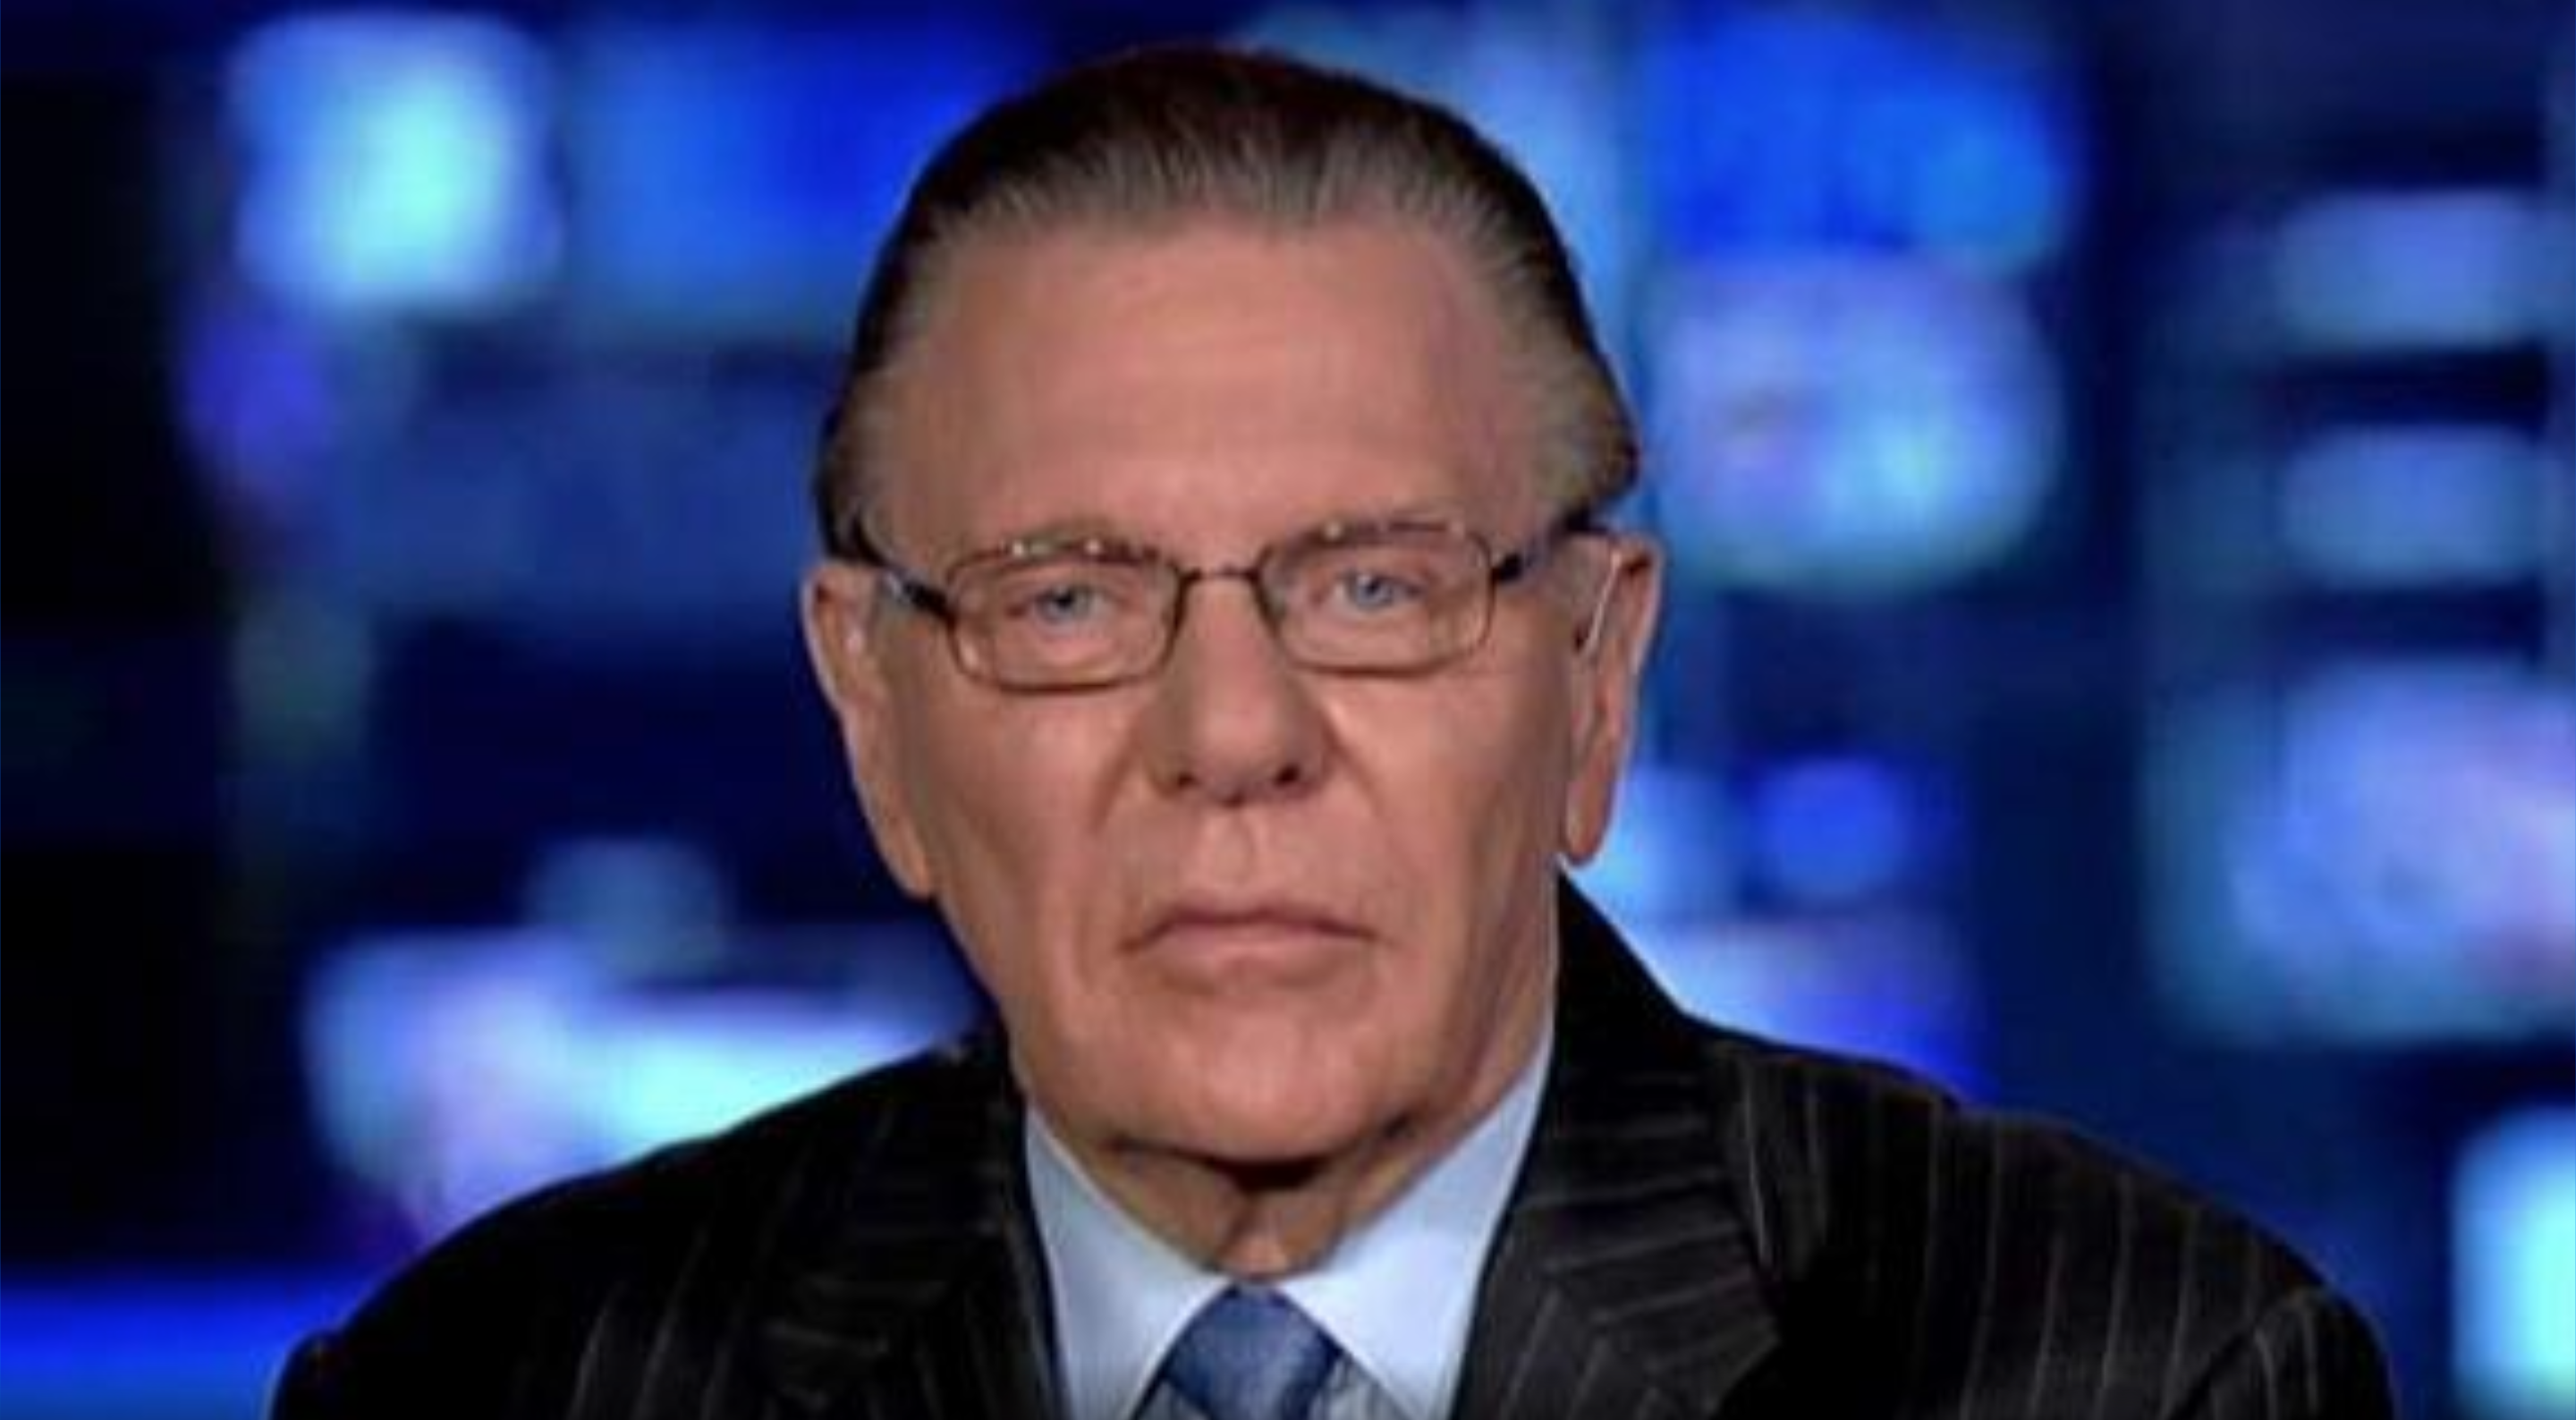 Westlake Legal Group Screen-Shot-2019-09-10-at-3.44.20-PM Jack Keane on CNN's CIA report: 'When national security is at risk,' sometimes a line needs to be drawn Joshua Nelson fox-news/tech/topics/cia fox-news/person/donald-trump fox-news/media/fox-news-flash fox-news/media fox news fnc/media fnc article 5972453a-0c87-54ee-a378-736fc29e588f